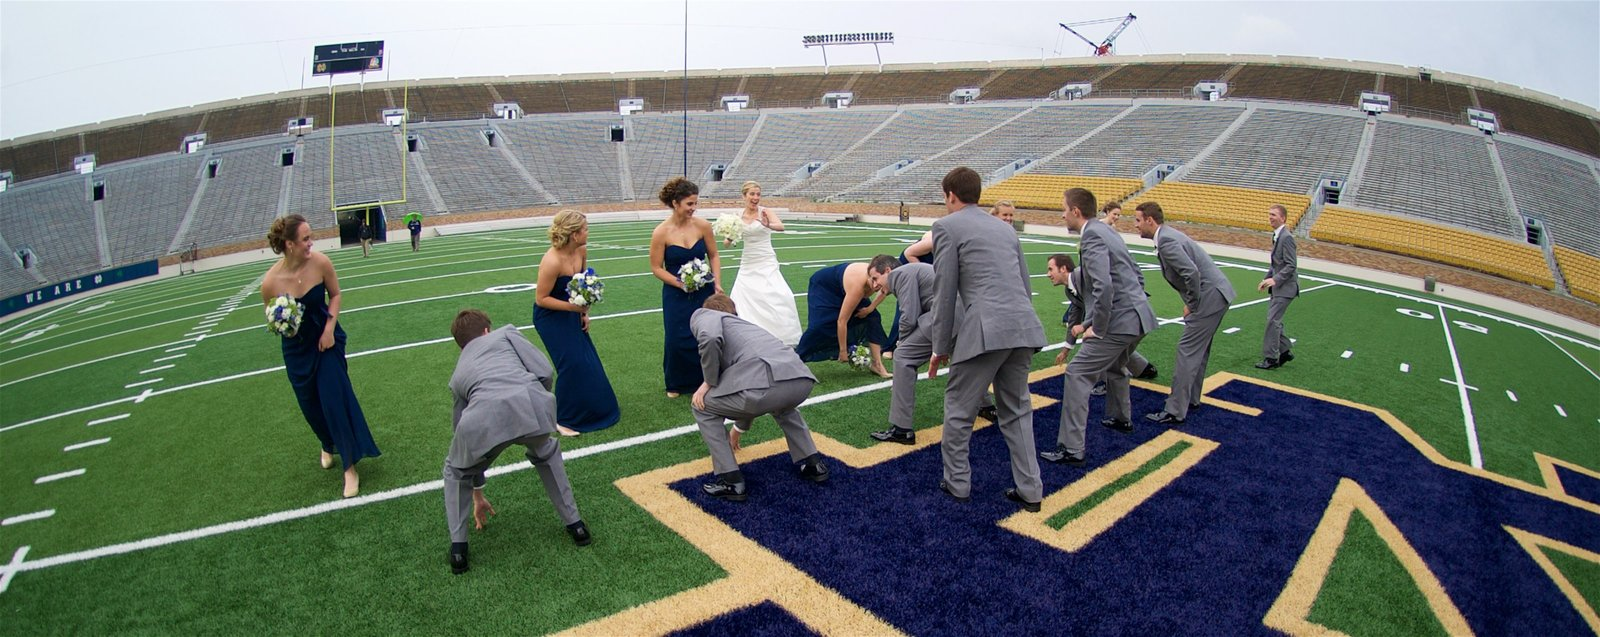 Football Shenanigans on the Filed at Notre Dame Stadium